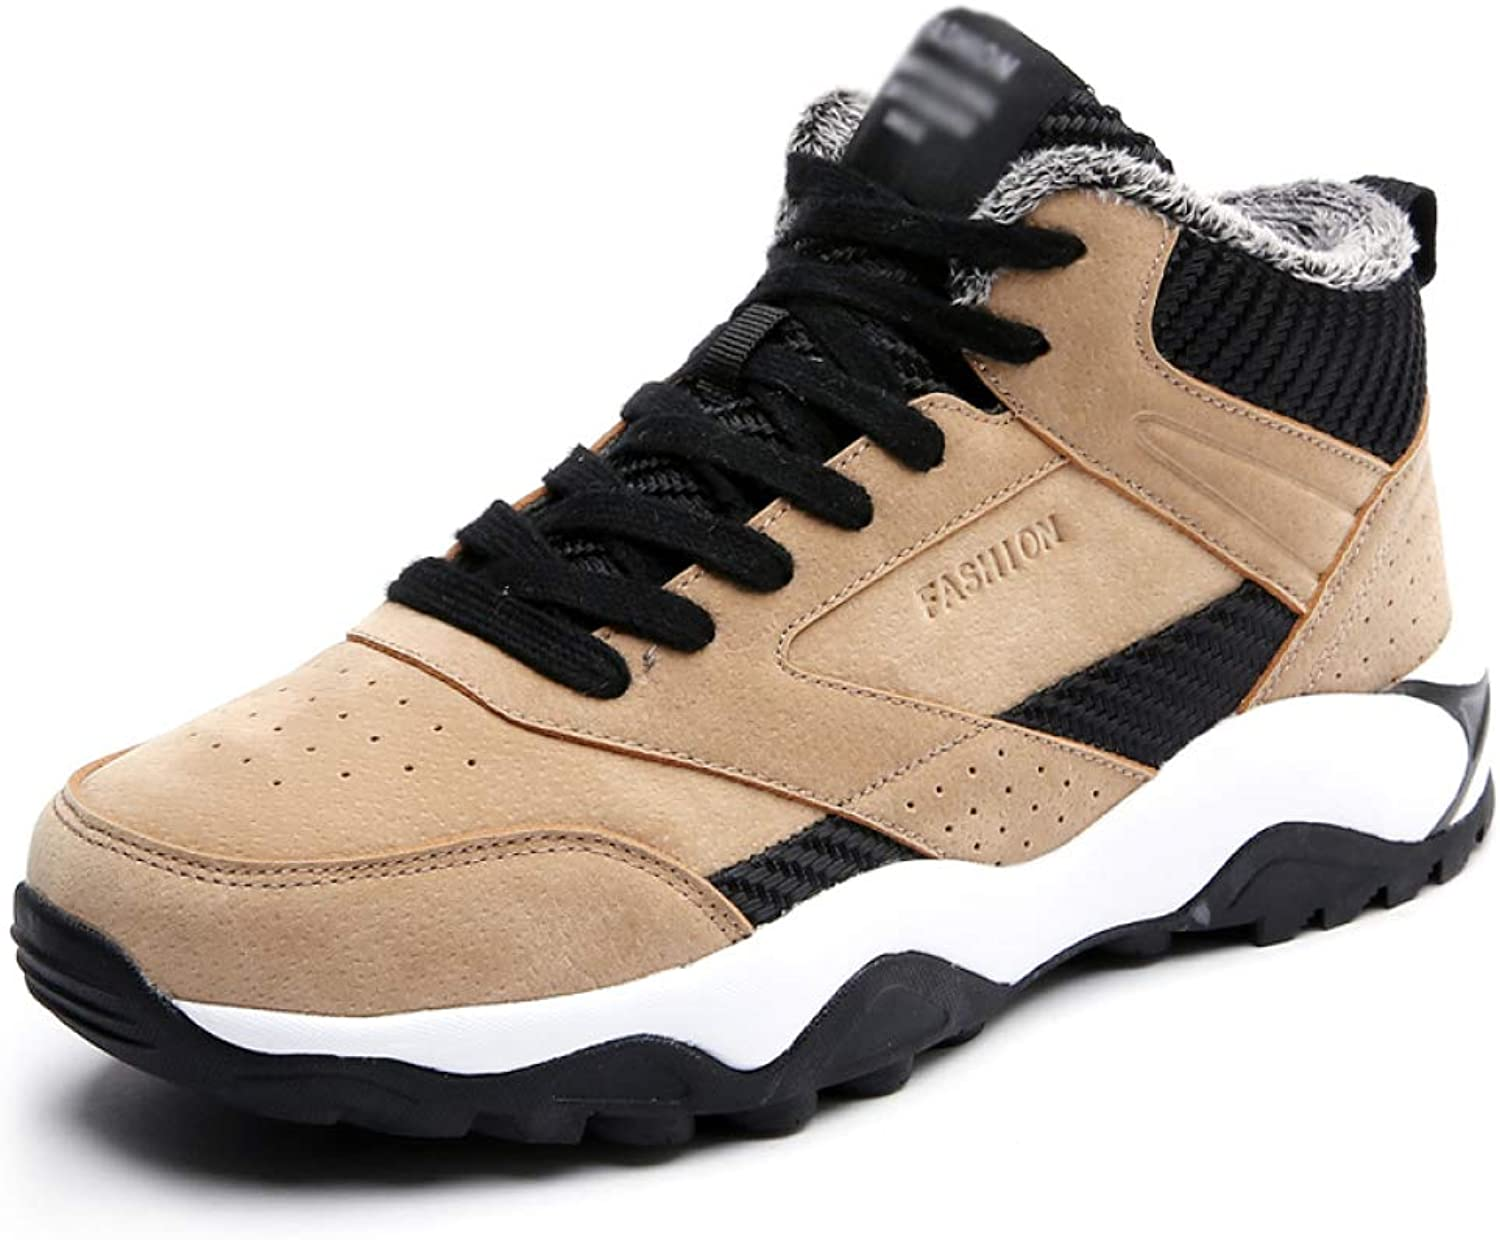 Mens Trainers Running shoes Casual Walking Lace-Up Athletic Gym Sports shoes Warm Faux Fur Lining Sneakers